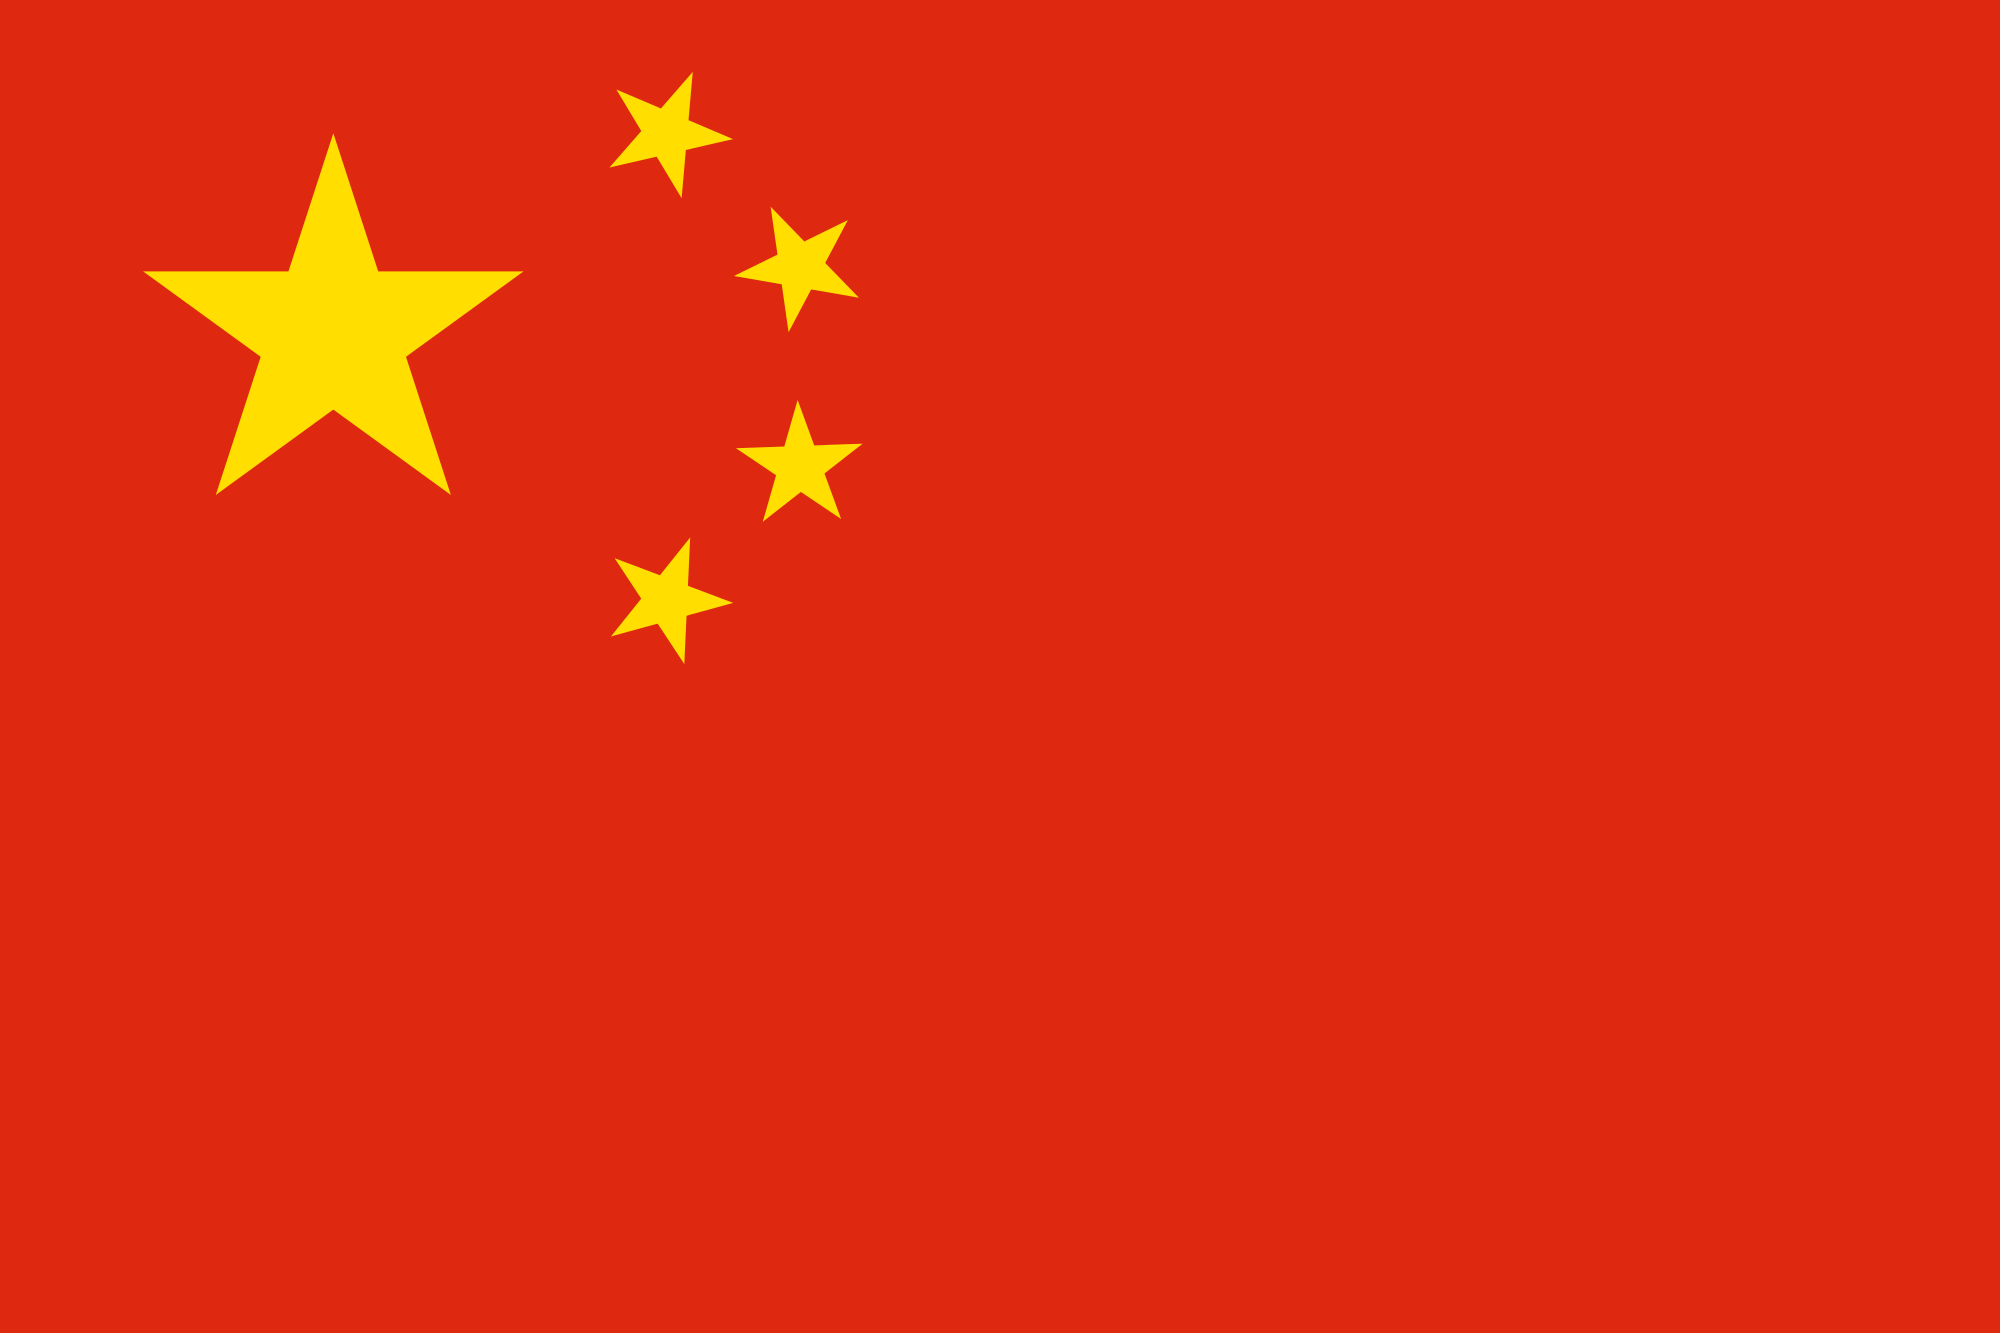 Chinese Flag red and yellow